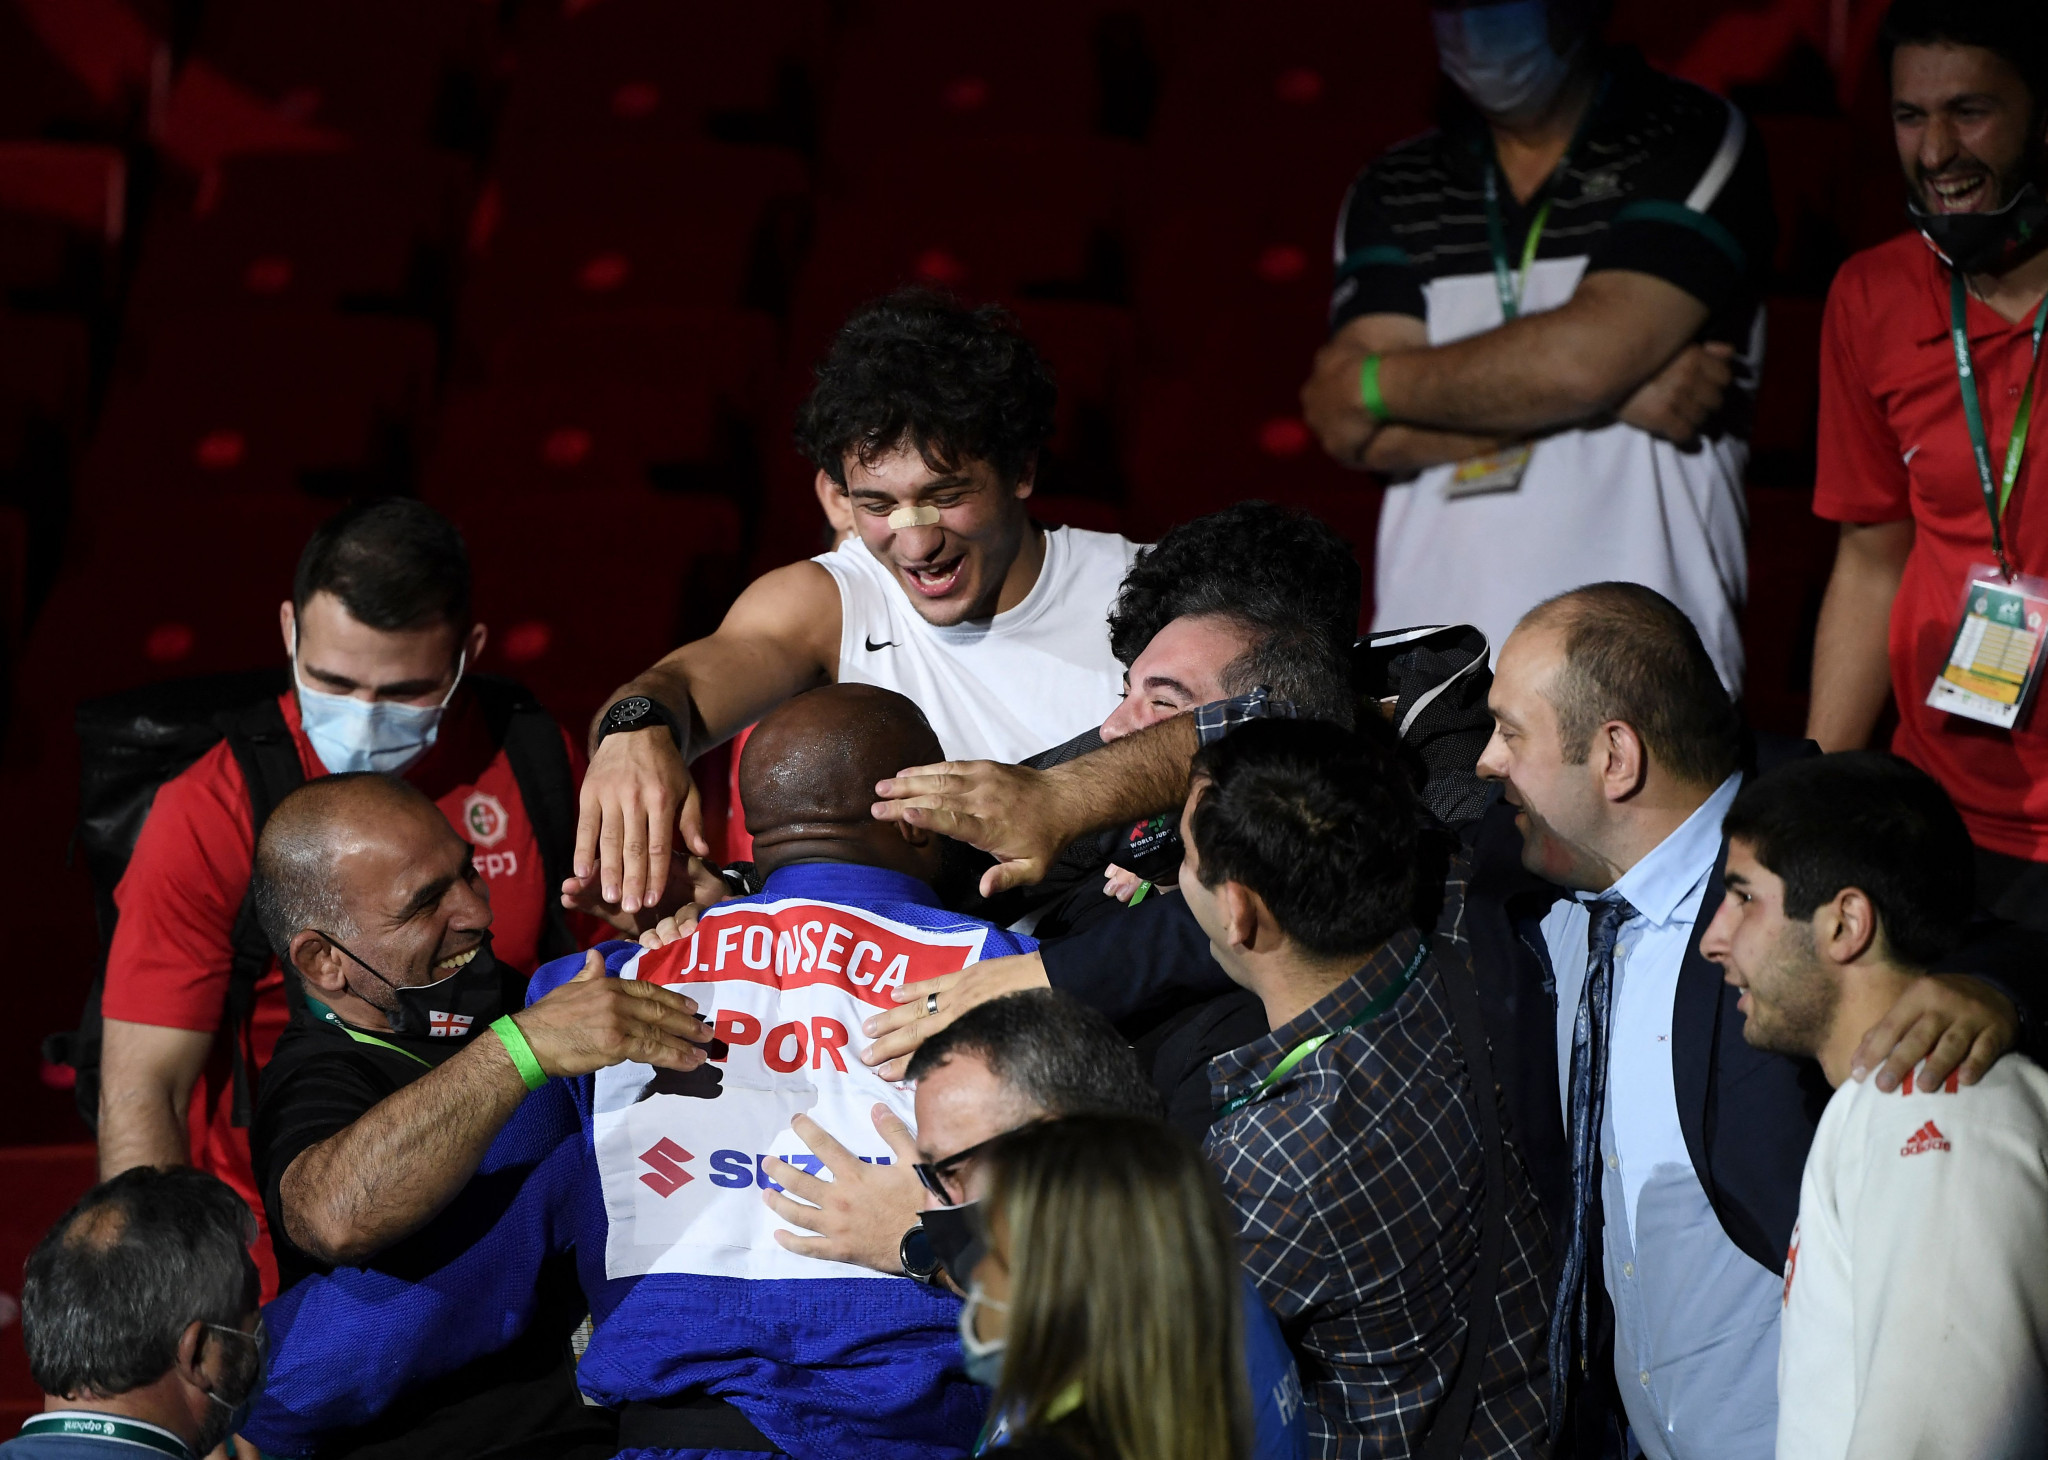 Jorge Fonseca celebrated with his team after retaining his world title to finish off the day of action ©Getty Images